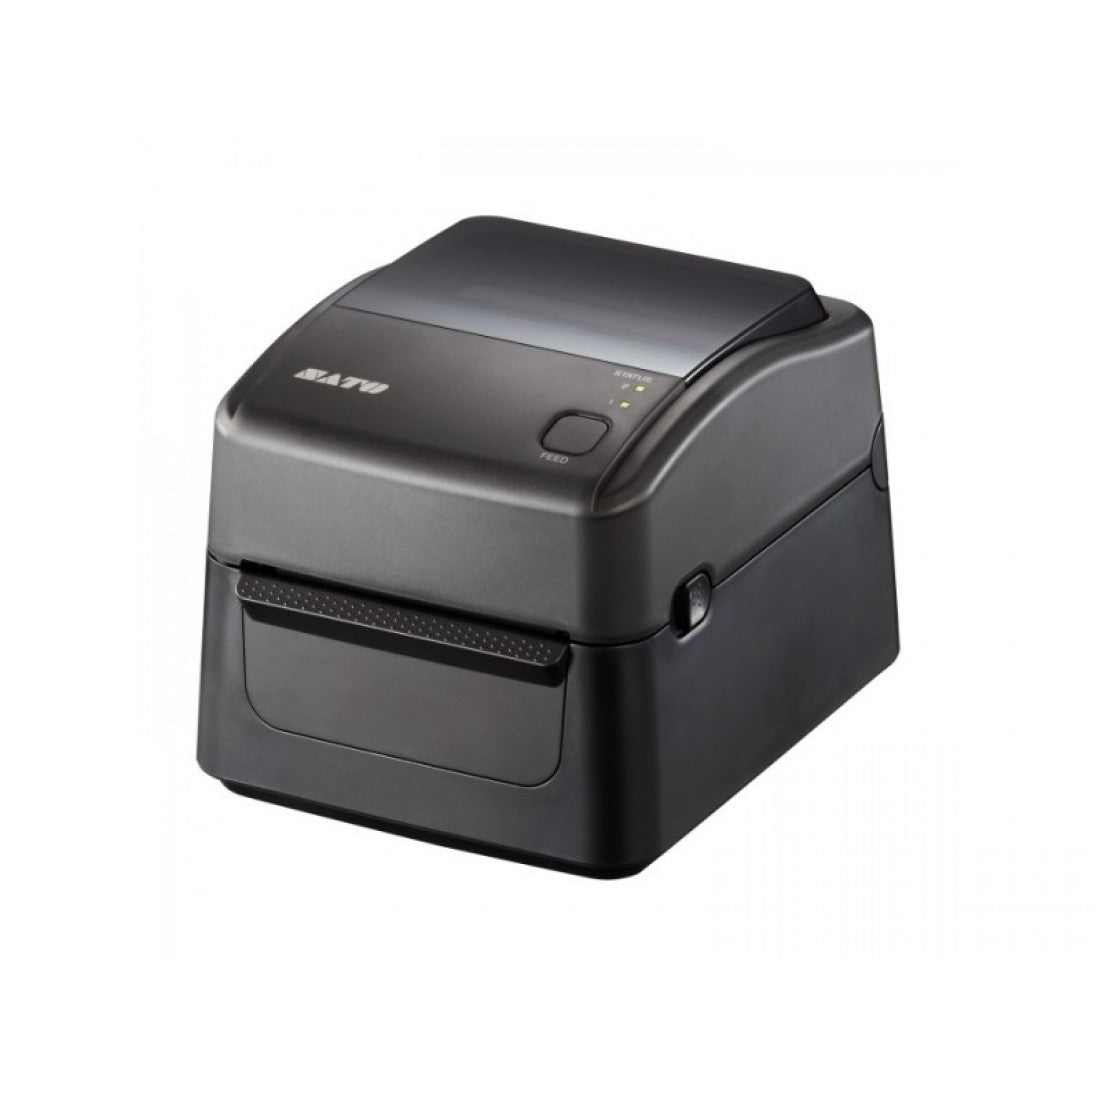 SATO Label Printer, 4 Inch, Direct Thermal, USB Cable, Power Cord